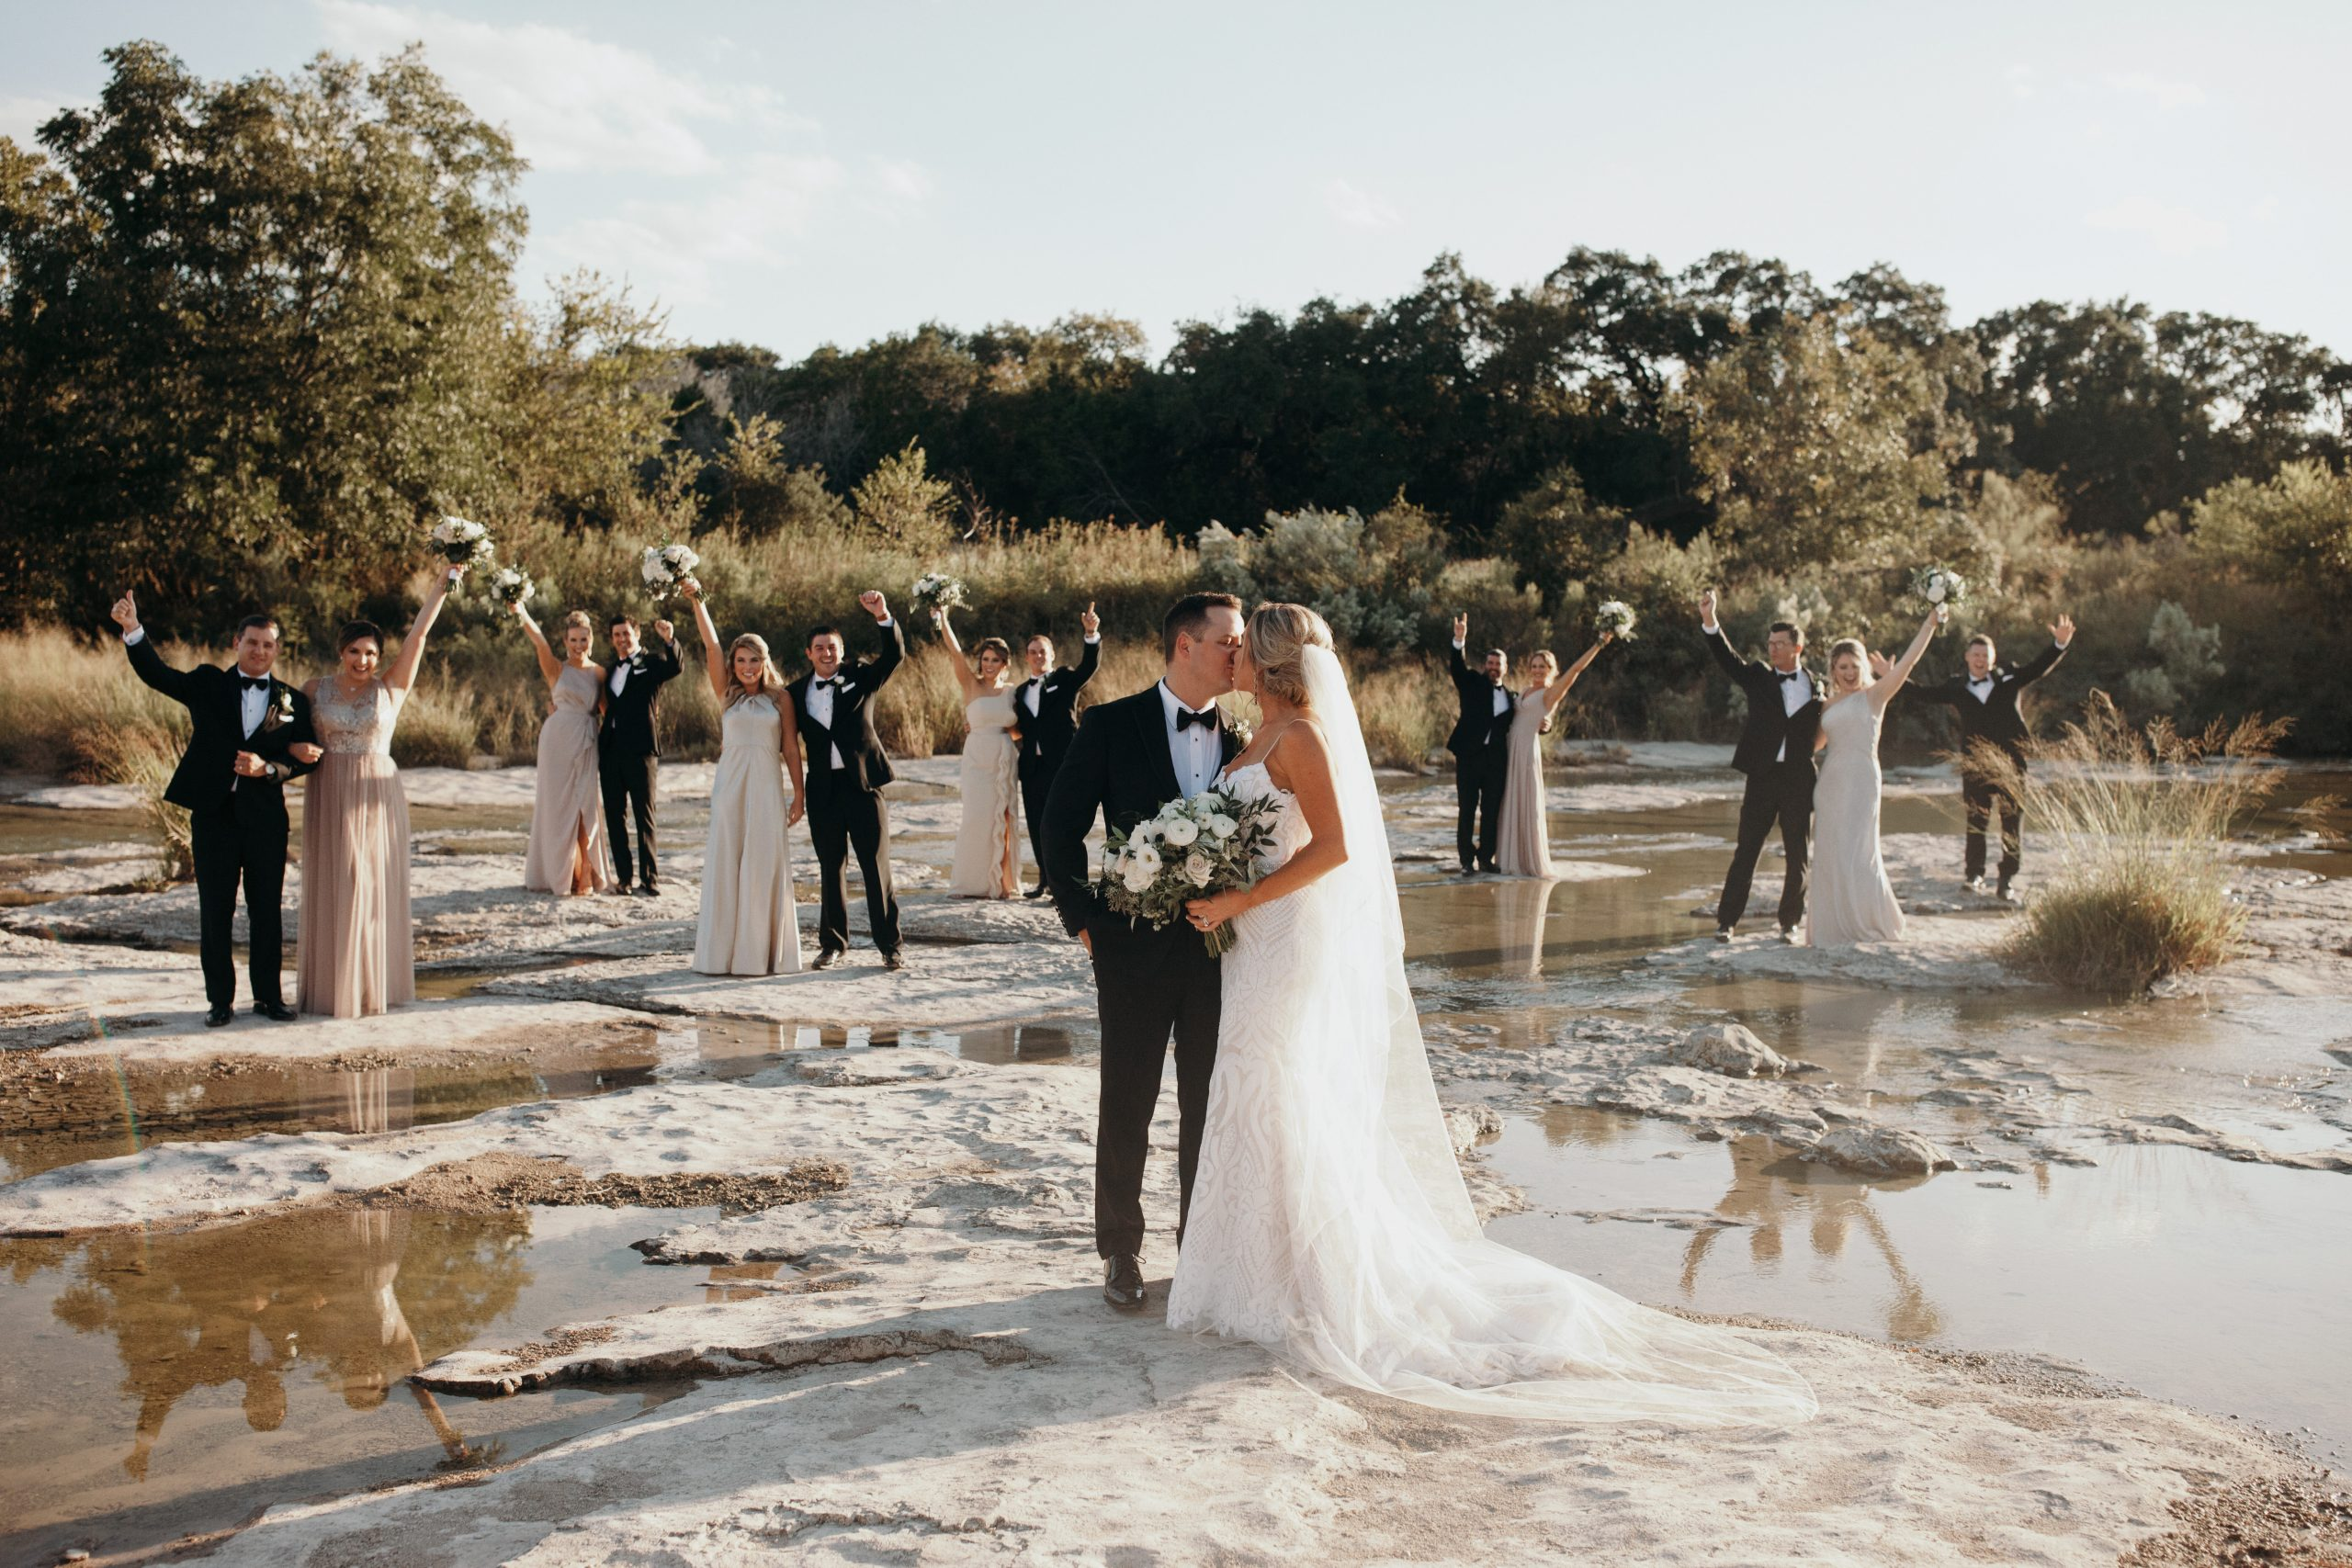 Fun Bridal Party on The Pedernales River